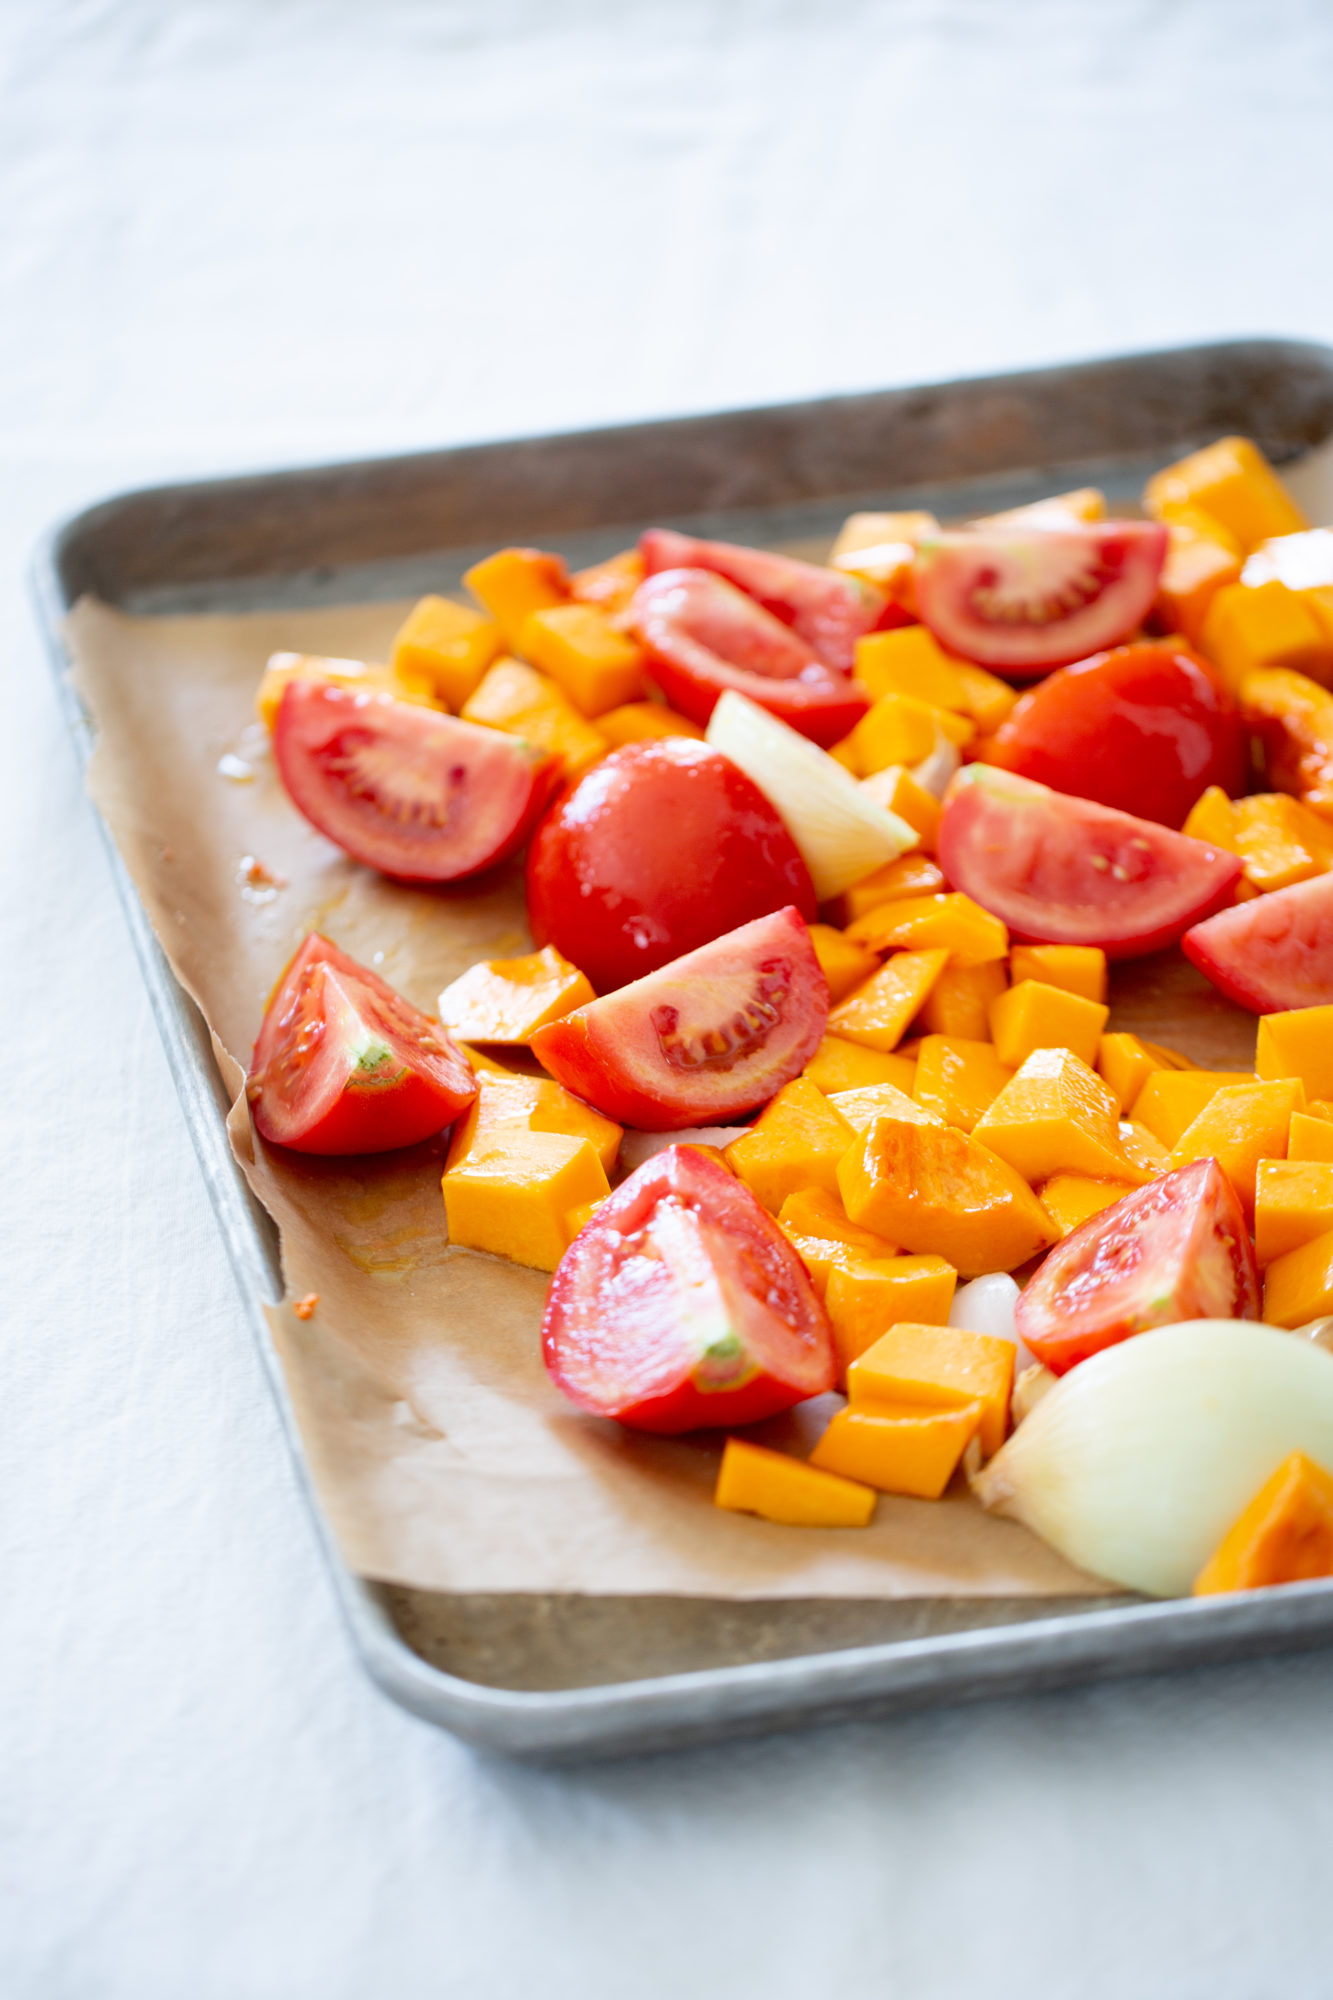 tomatoes, butternut squash, and onions before roasting